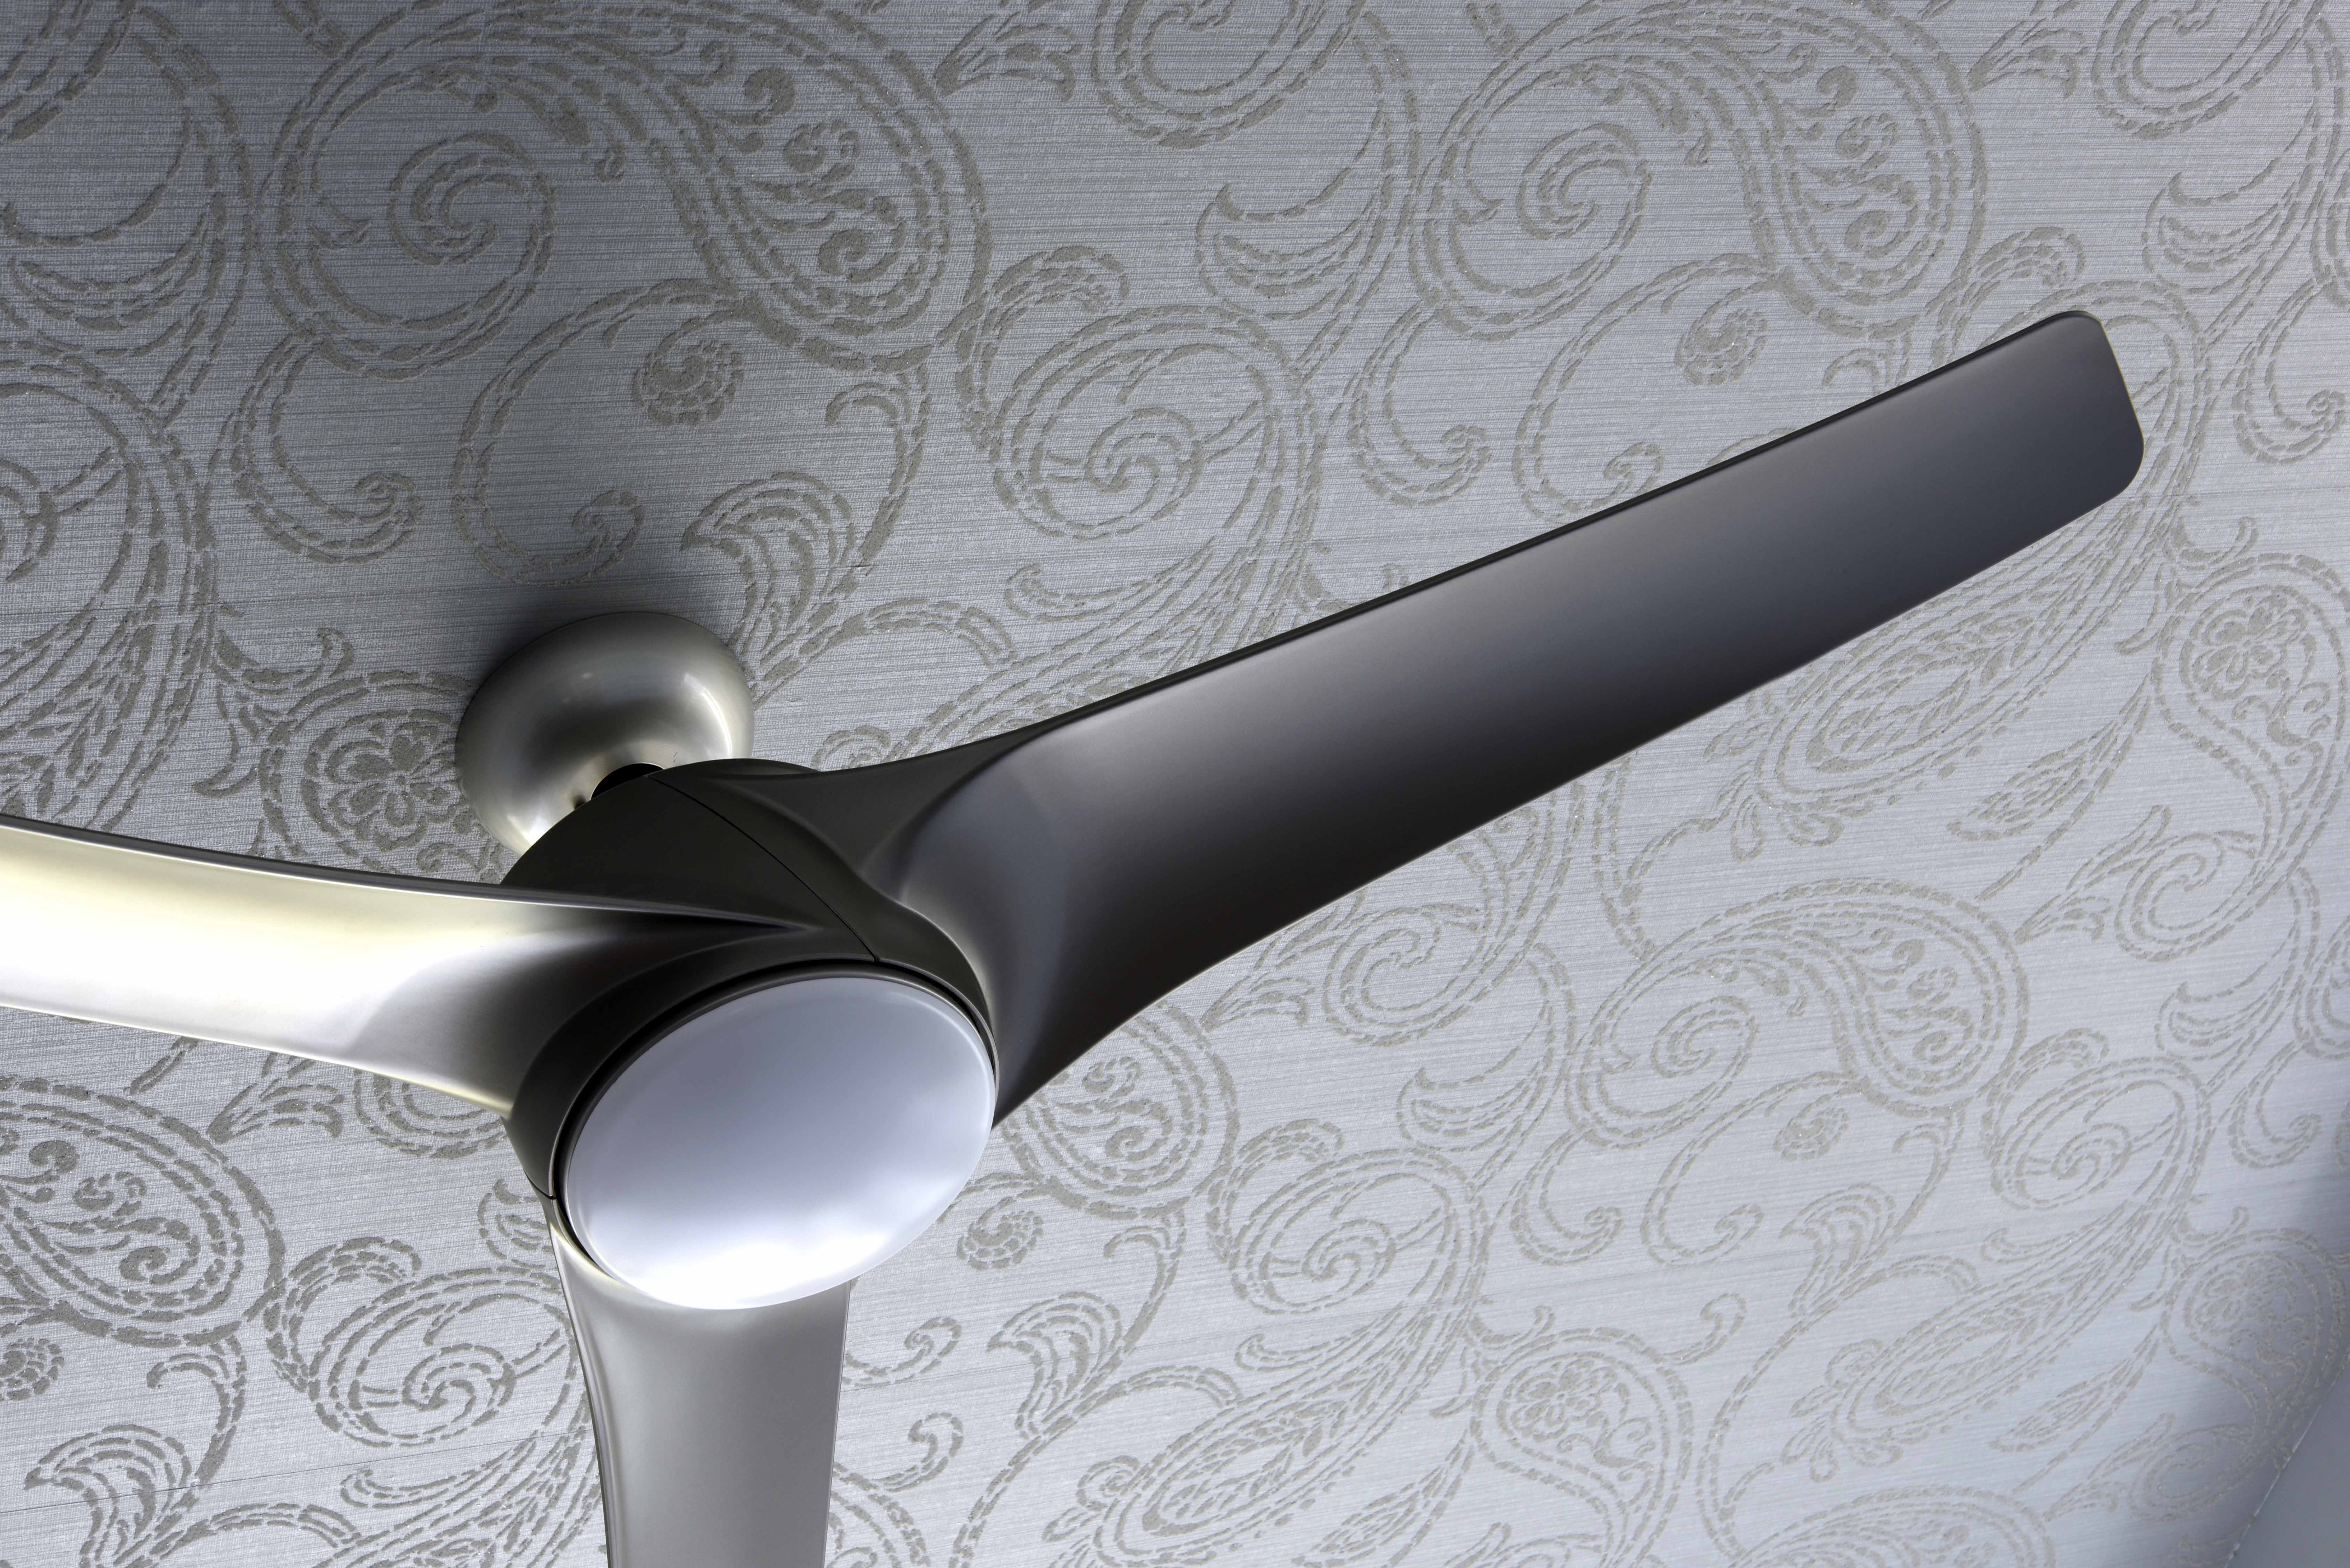 wallpaper_fan_detail_1